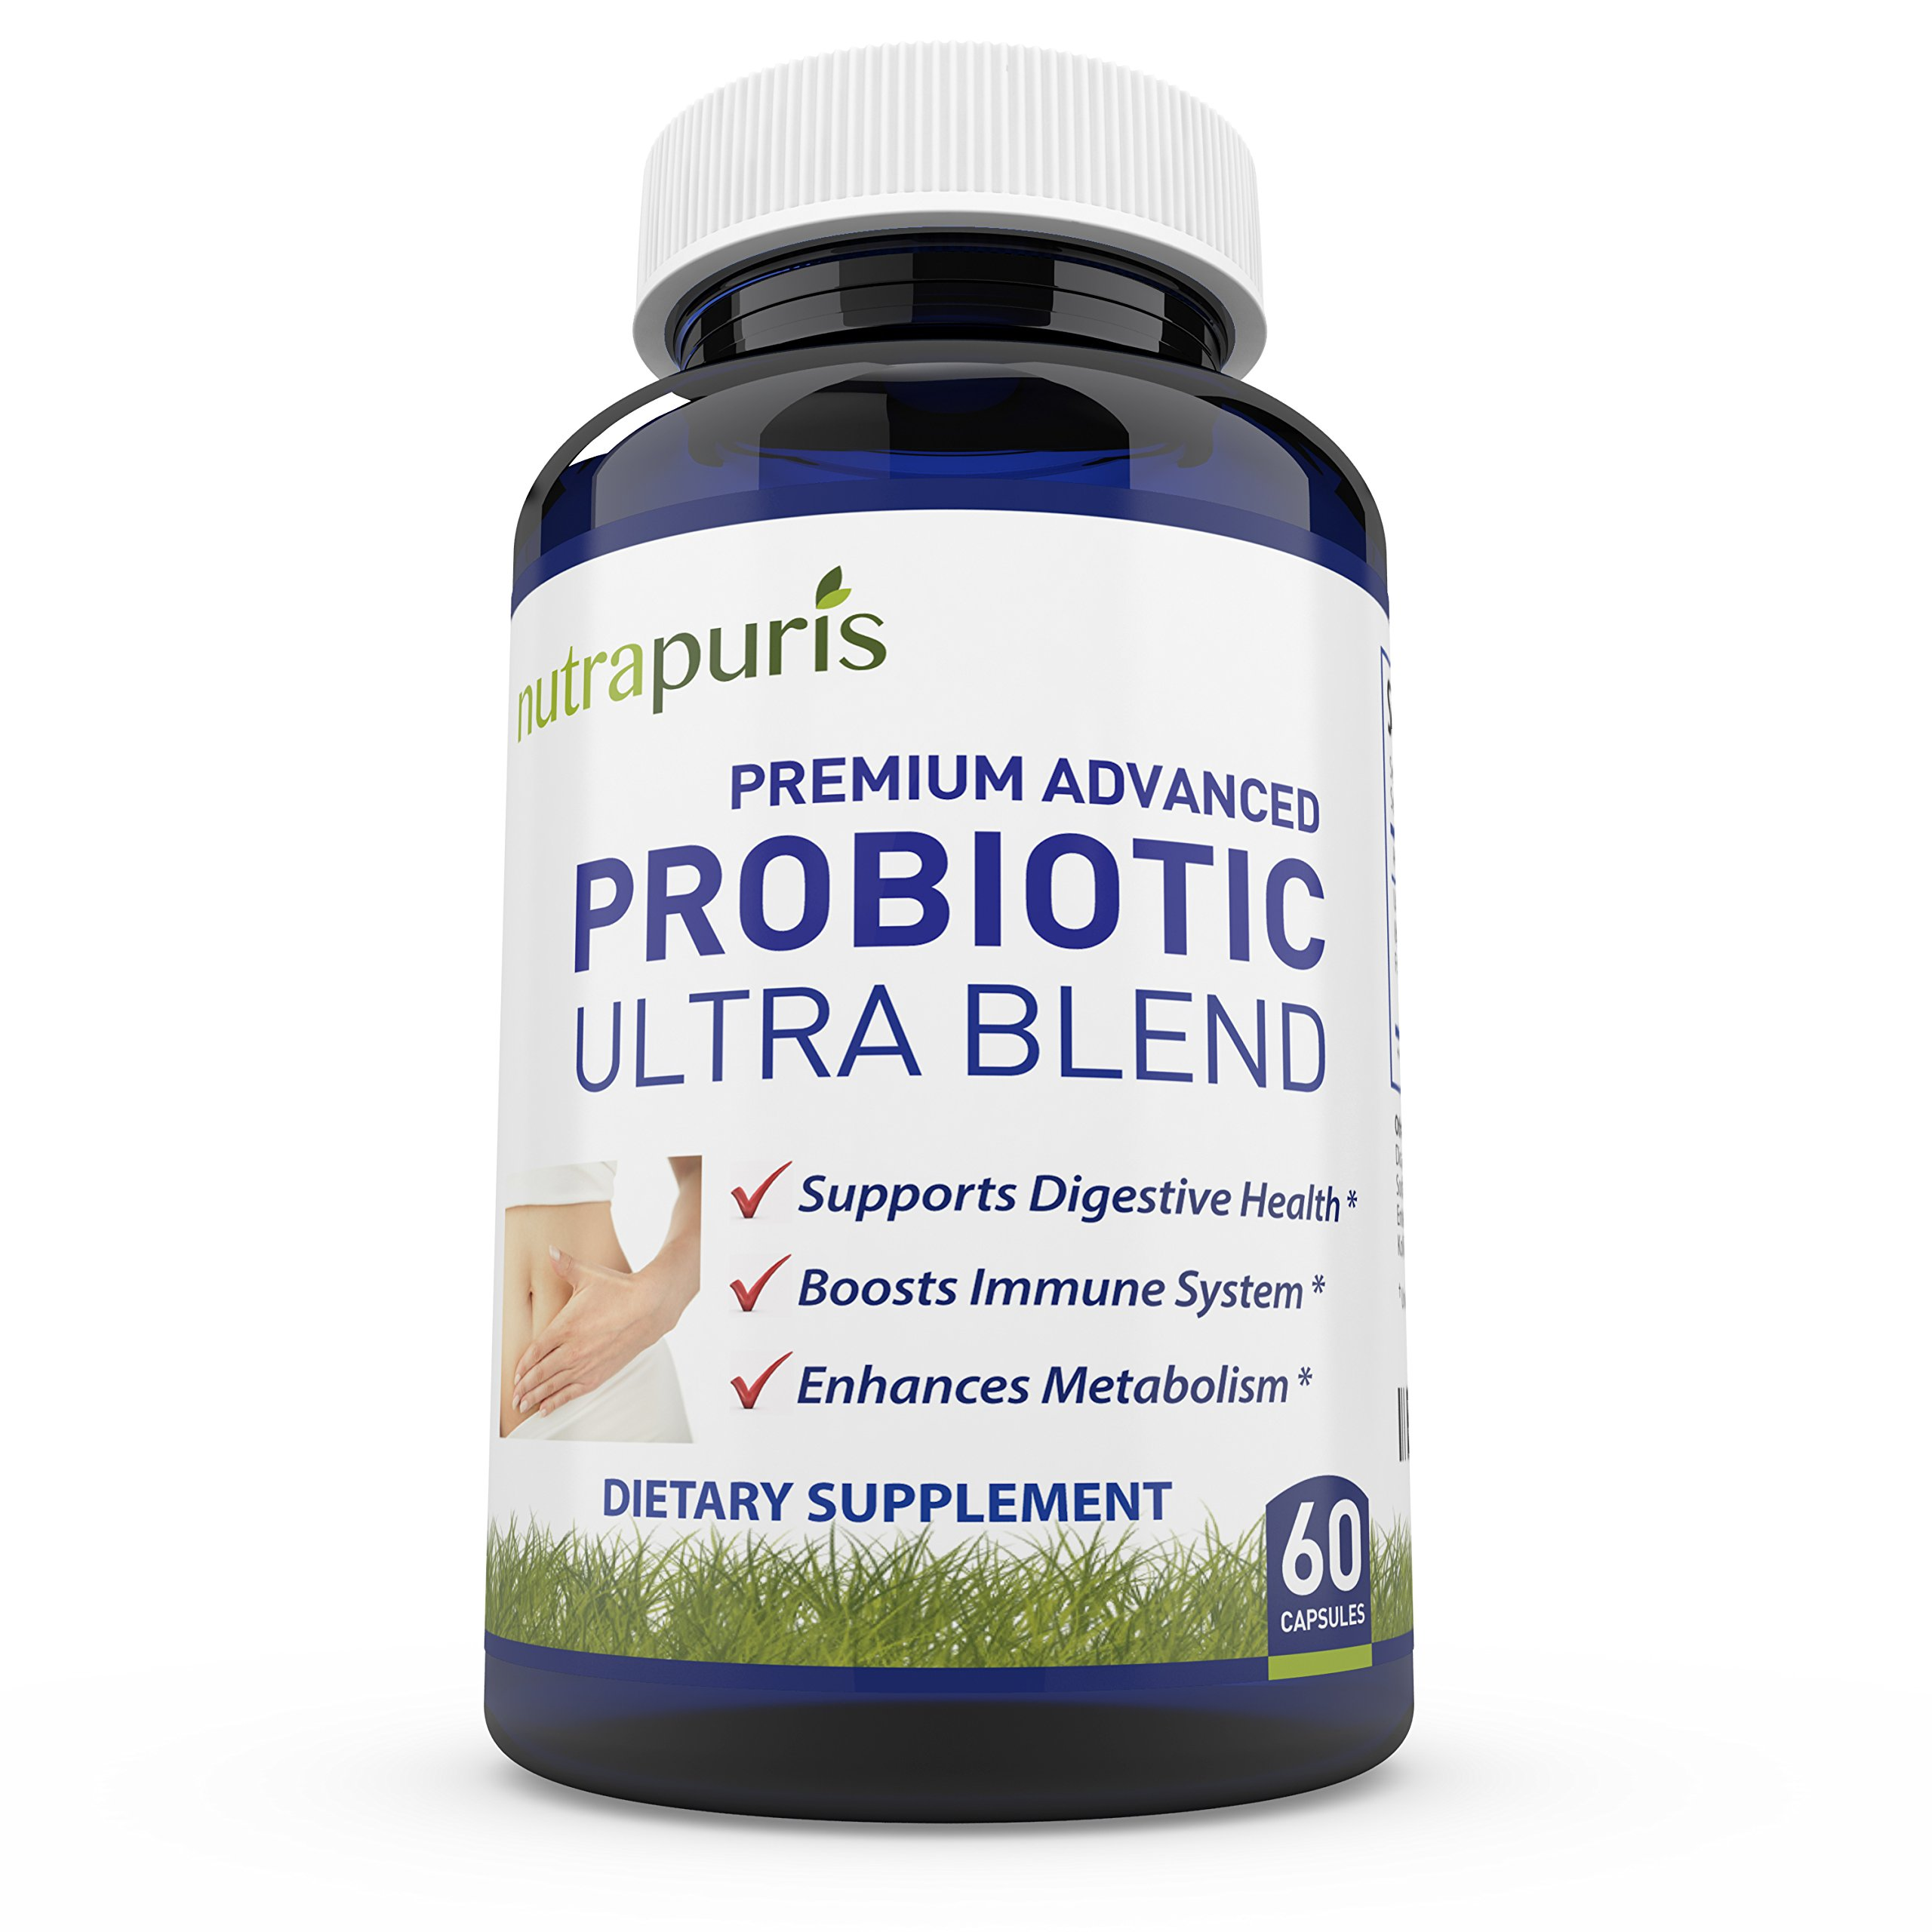 Best Patented Probiotic Ultra Blend – 15 Billion CFU/g – For Digestion Issues - Diarrhea, Irritable Bowel Syndrome IBS, and Bloating – Dairy Free FOS for Women and Men - No Refrigeration Needed